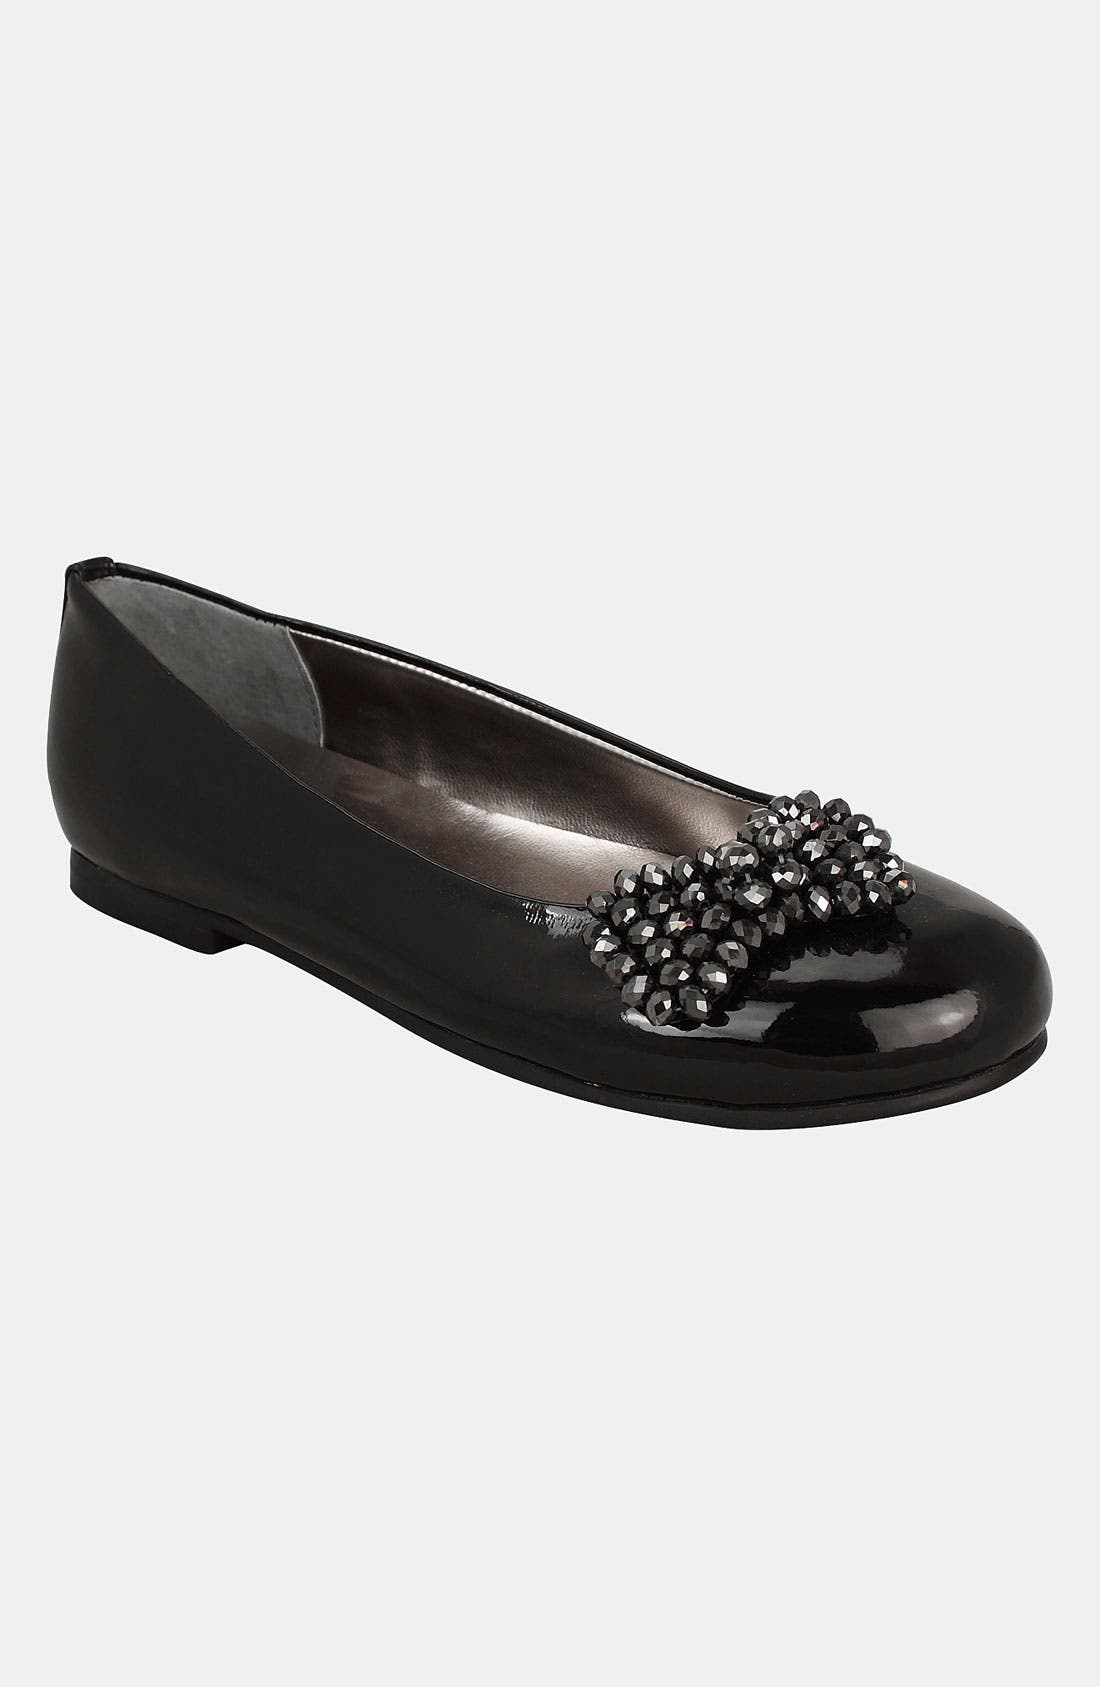 Alternate Image 1 Selected - Nina 'Daley' Studded Bow Flat (Little Kid & Big Kid)